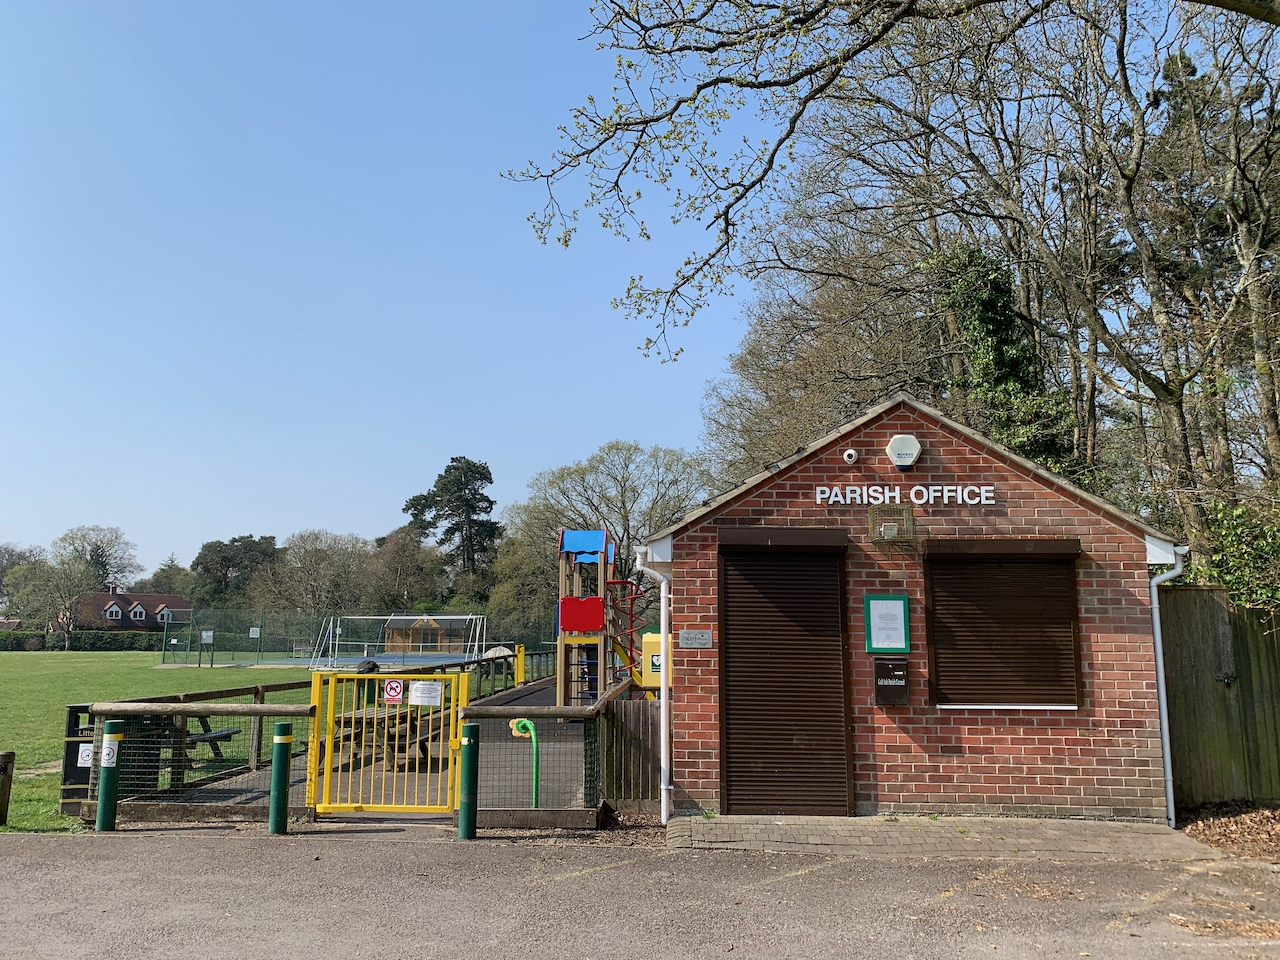 The brick built Parish Office is shown next to the children's play area.